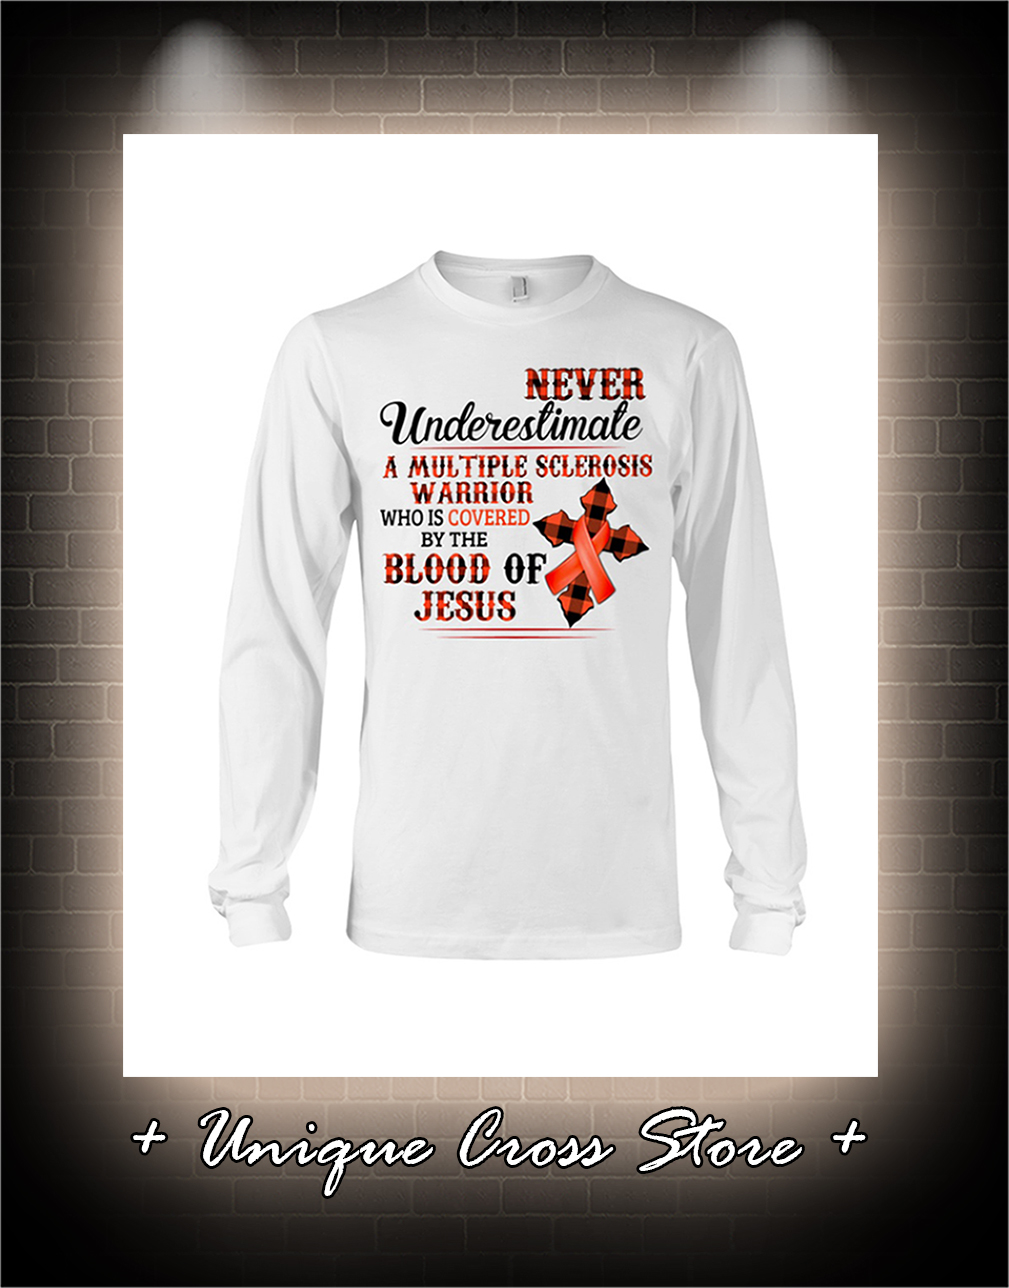 Never Underestimate A Multiple Sclerosis Warrior Who Is Covered By The Blood Of Jesus long sleeve